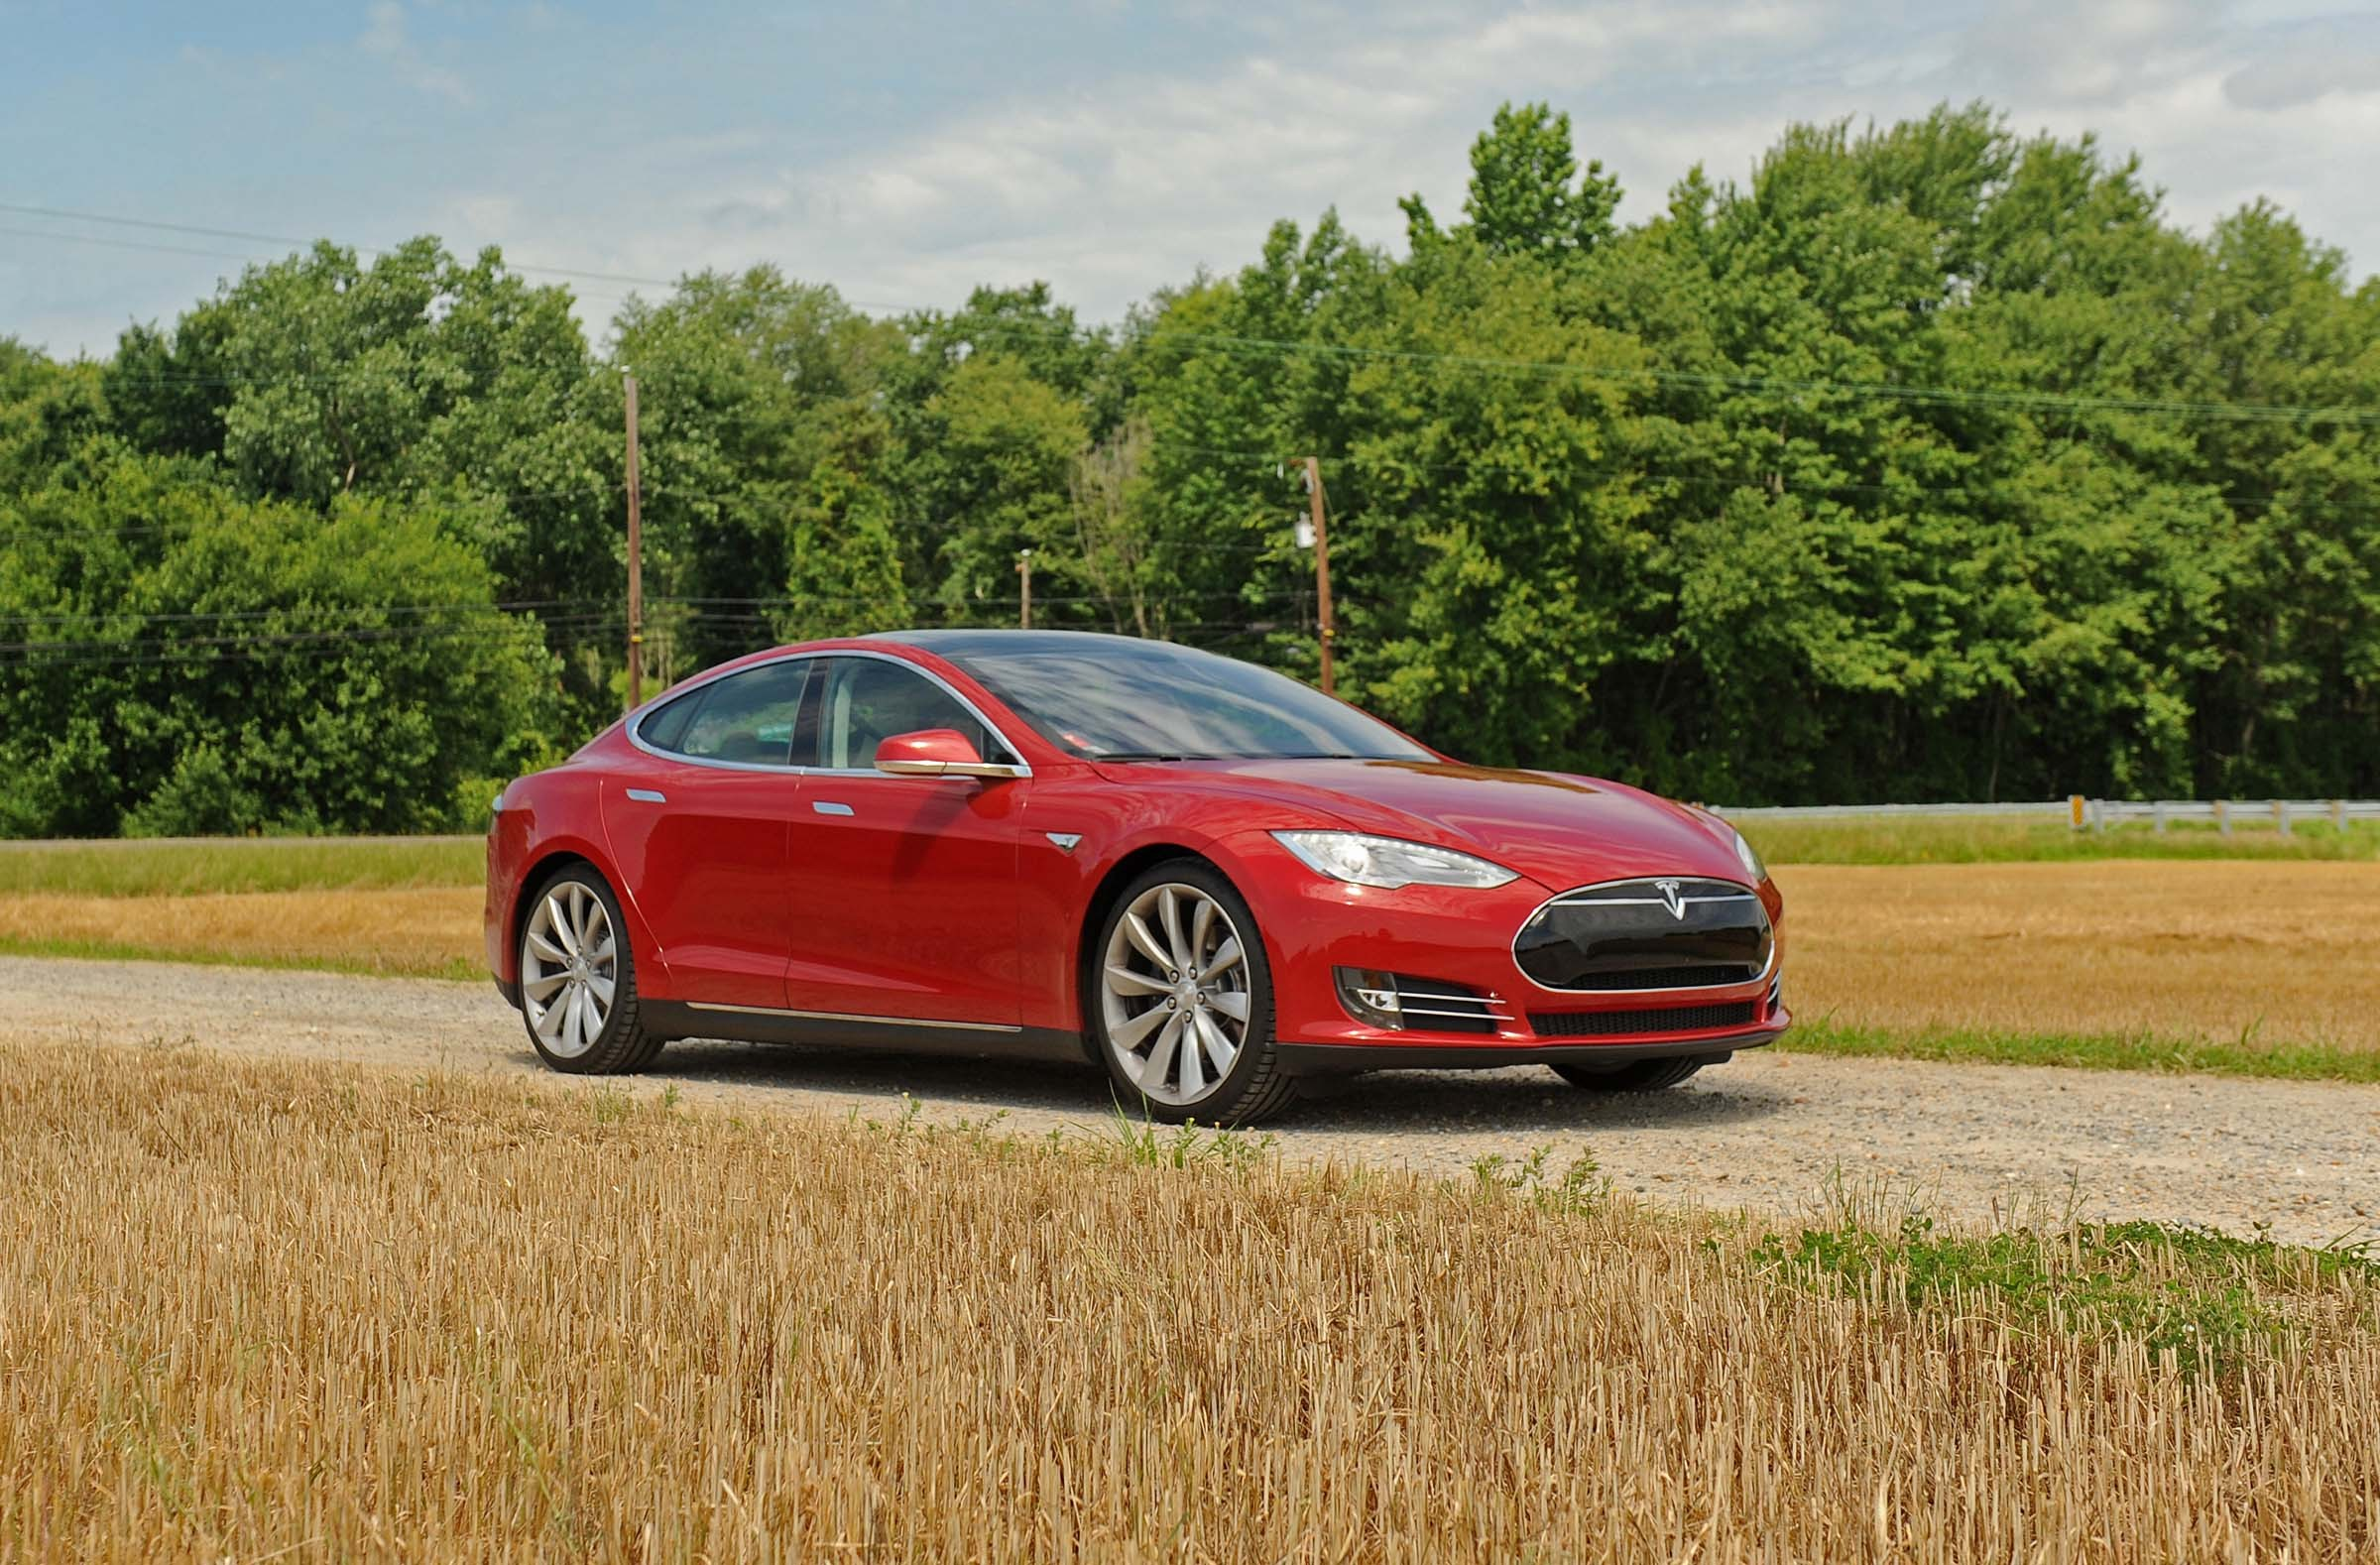 Tesla can't sell this all-electric car directly to Virginia consumers. A dealership must offer it for sale. - SCOTT ELMQUIST